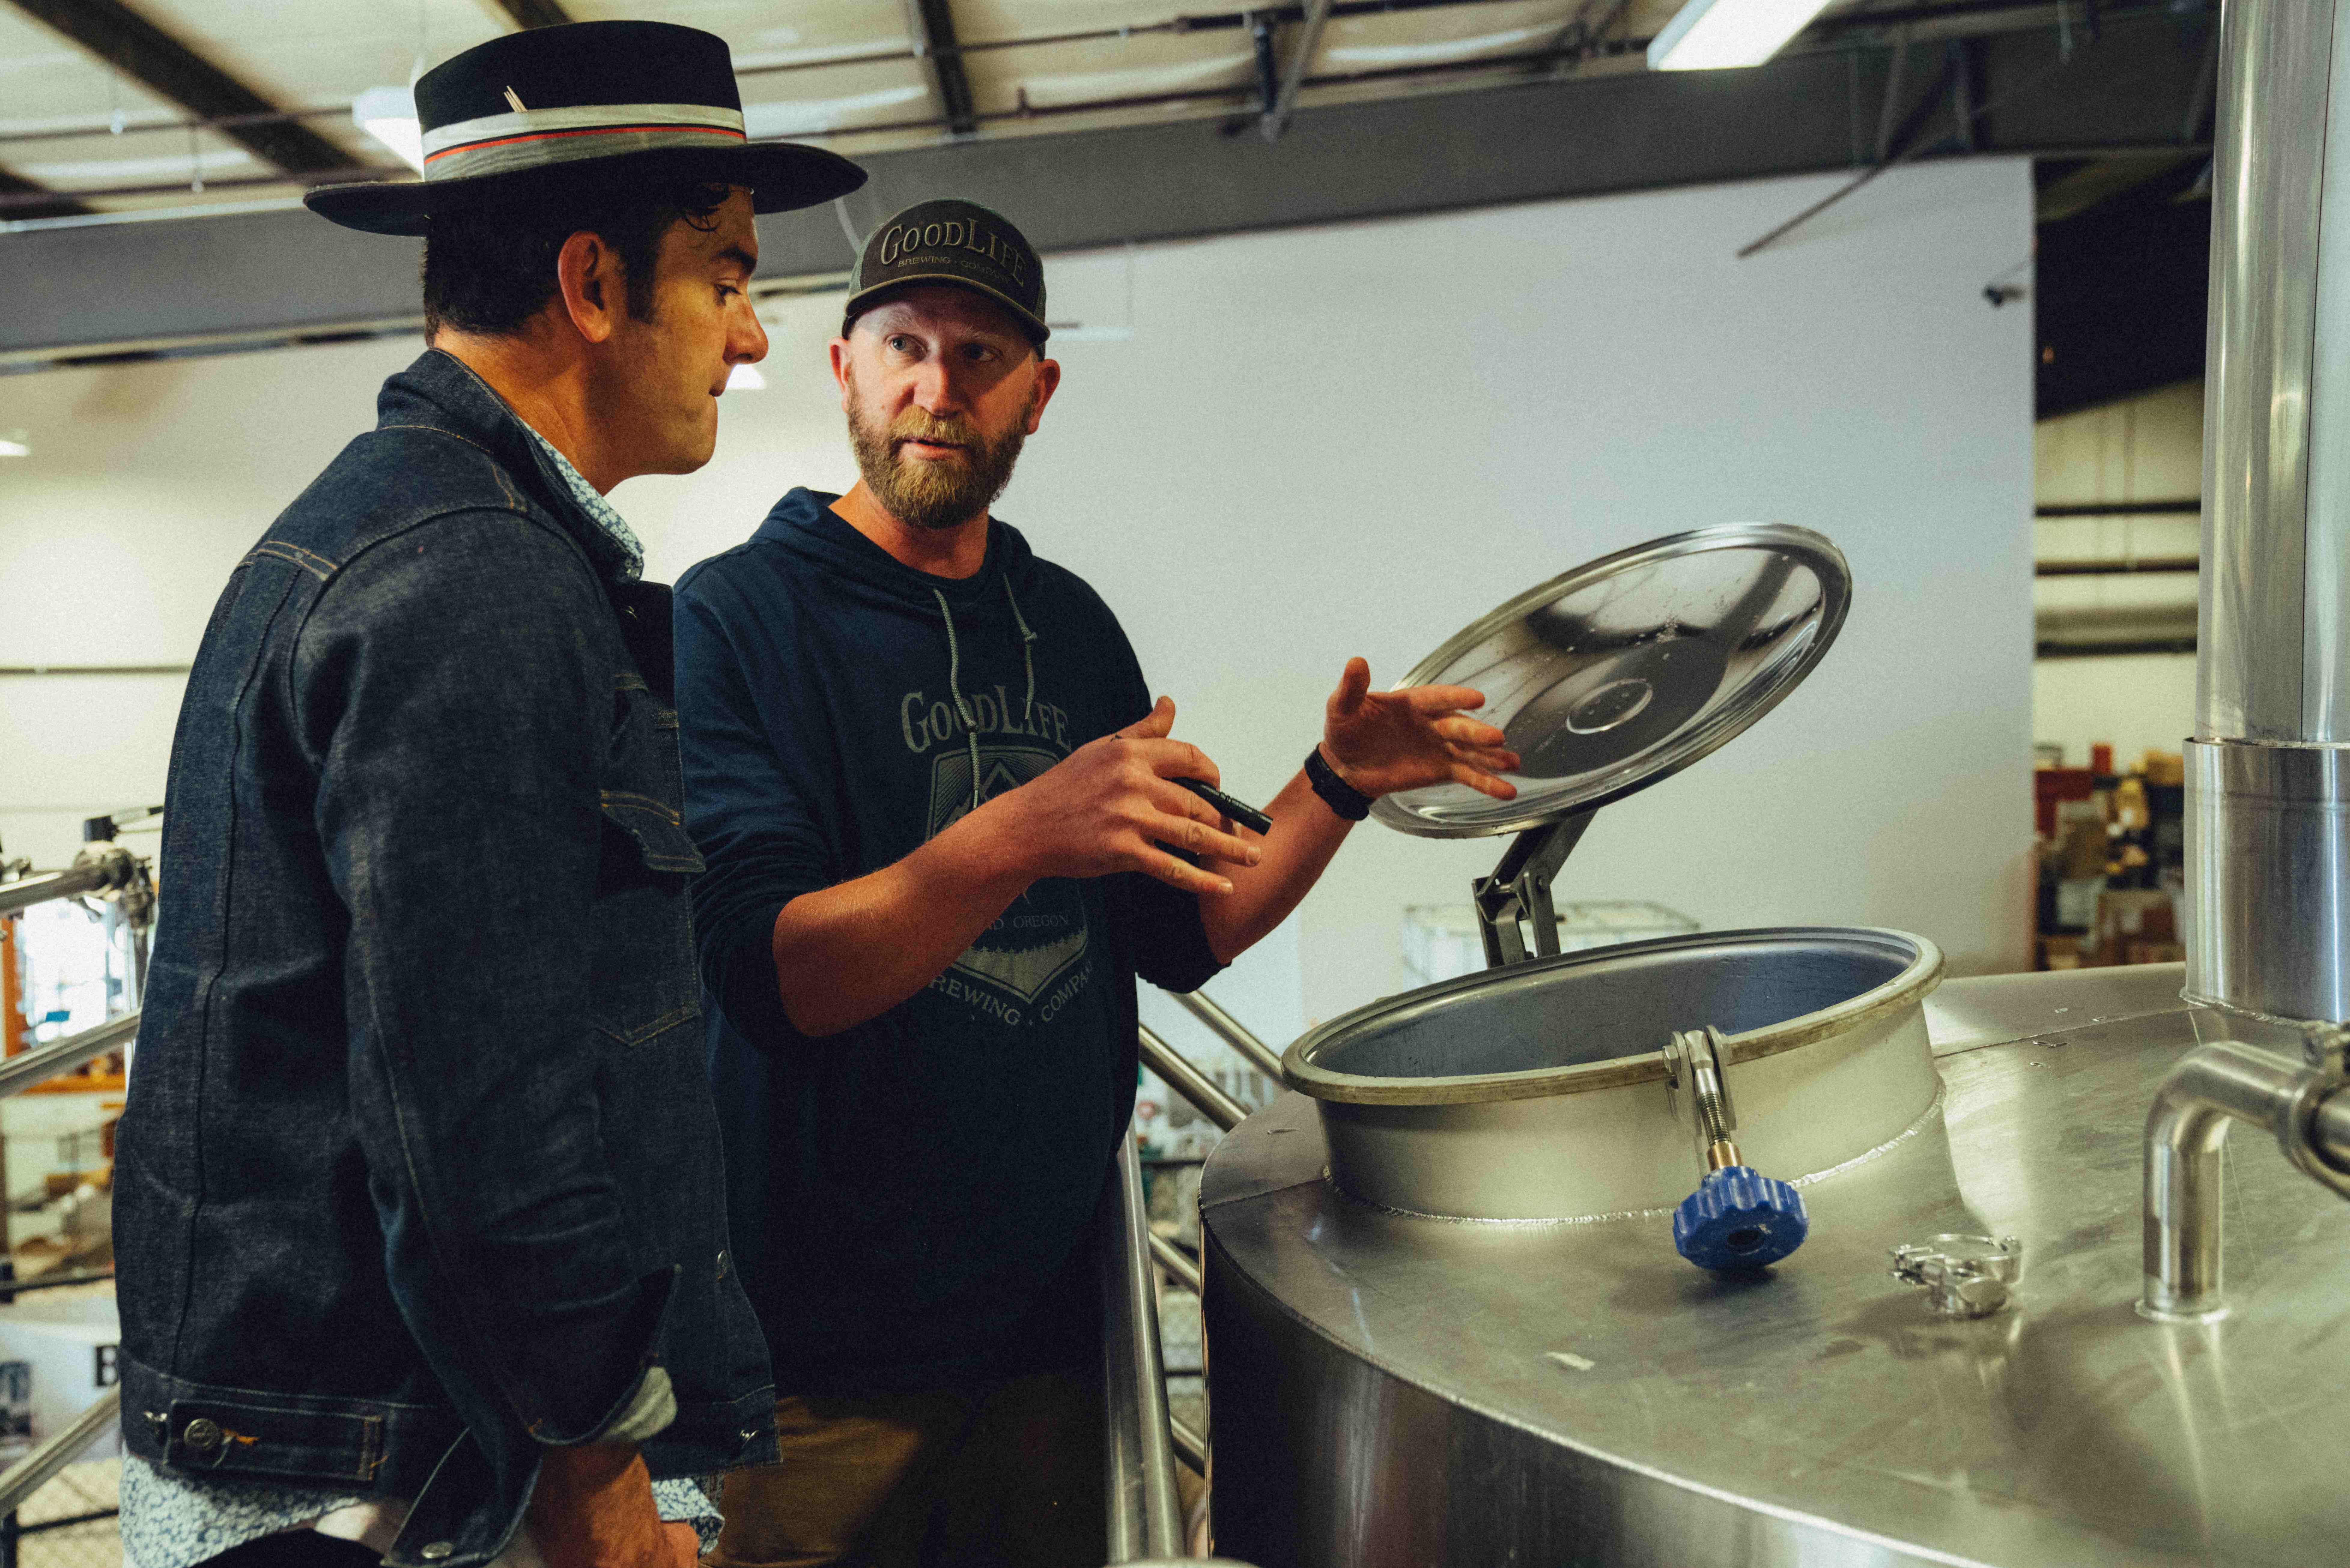 G. Love and Tyler West on the brewdeck. (image courtesy of GoodLife Brewing)